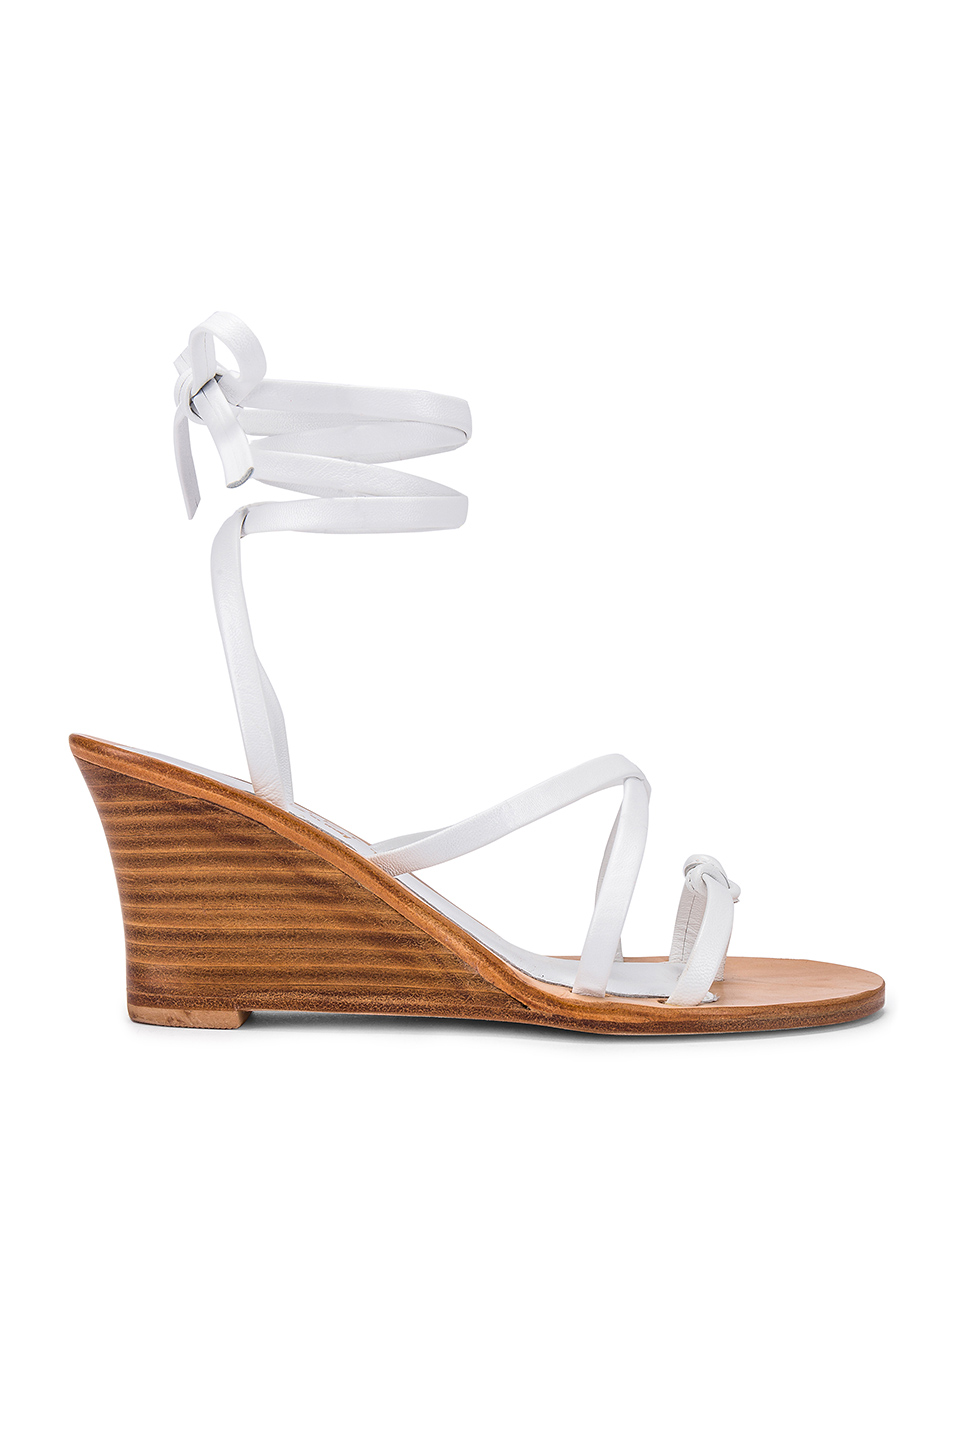 CoRNETTI Caminia Wedge